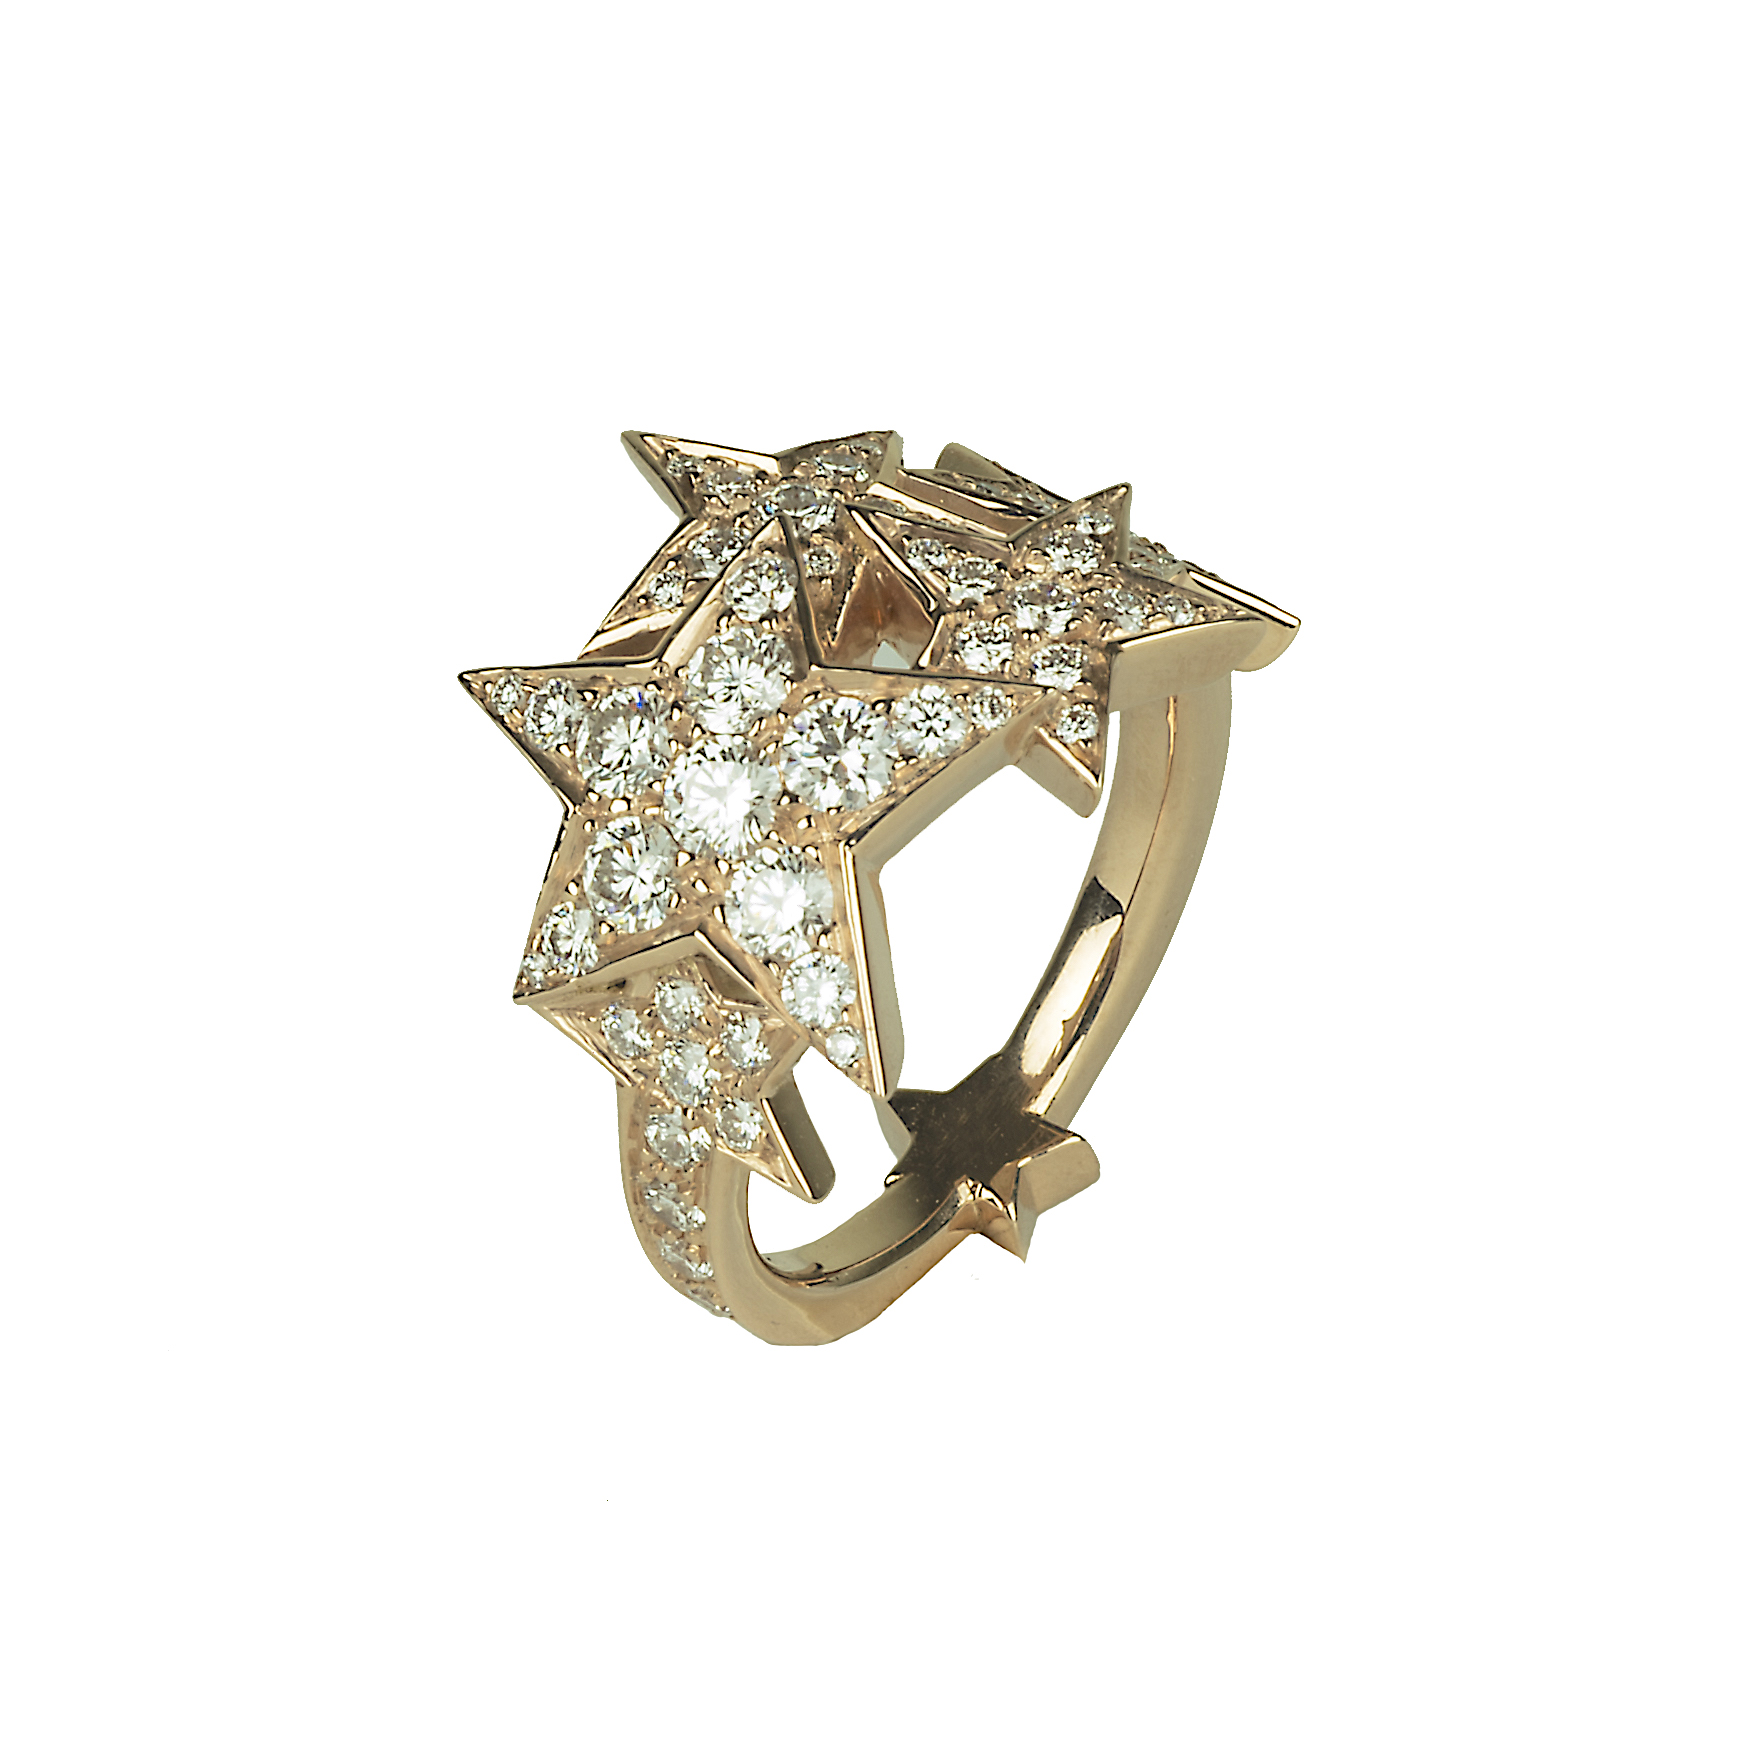 Starburst ring in rose gold and diamonds.